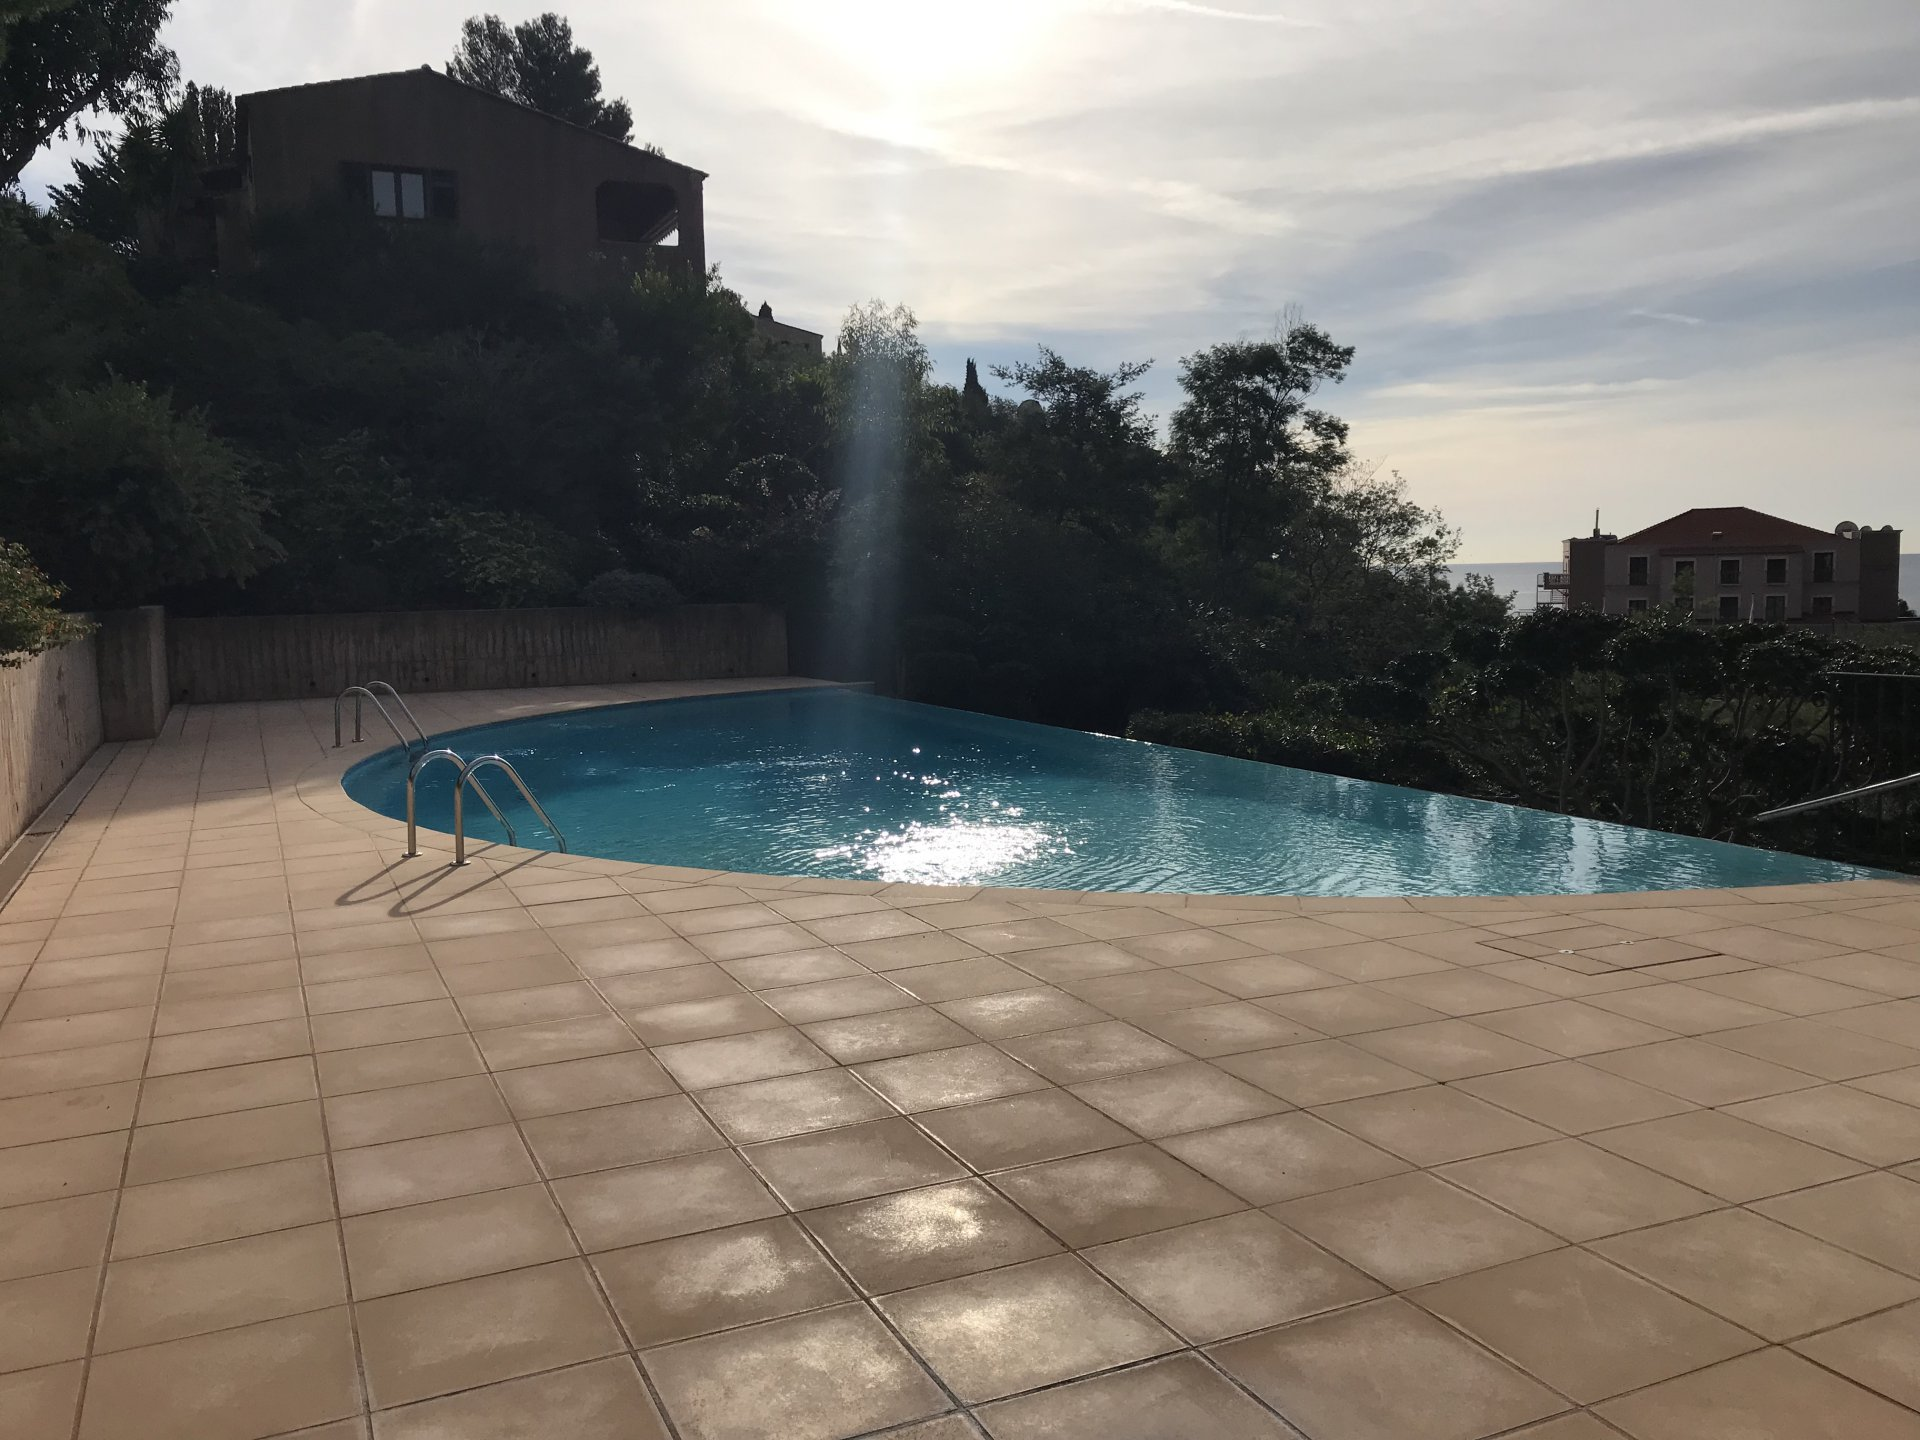 3-room semi-detached villa furnished with terraces